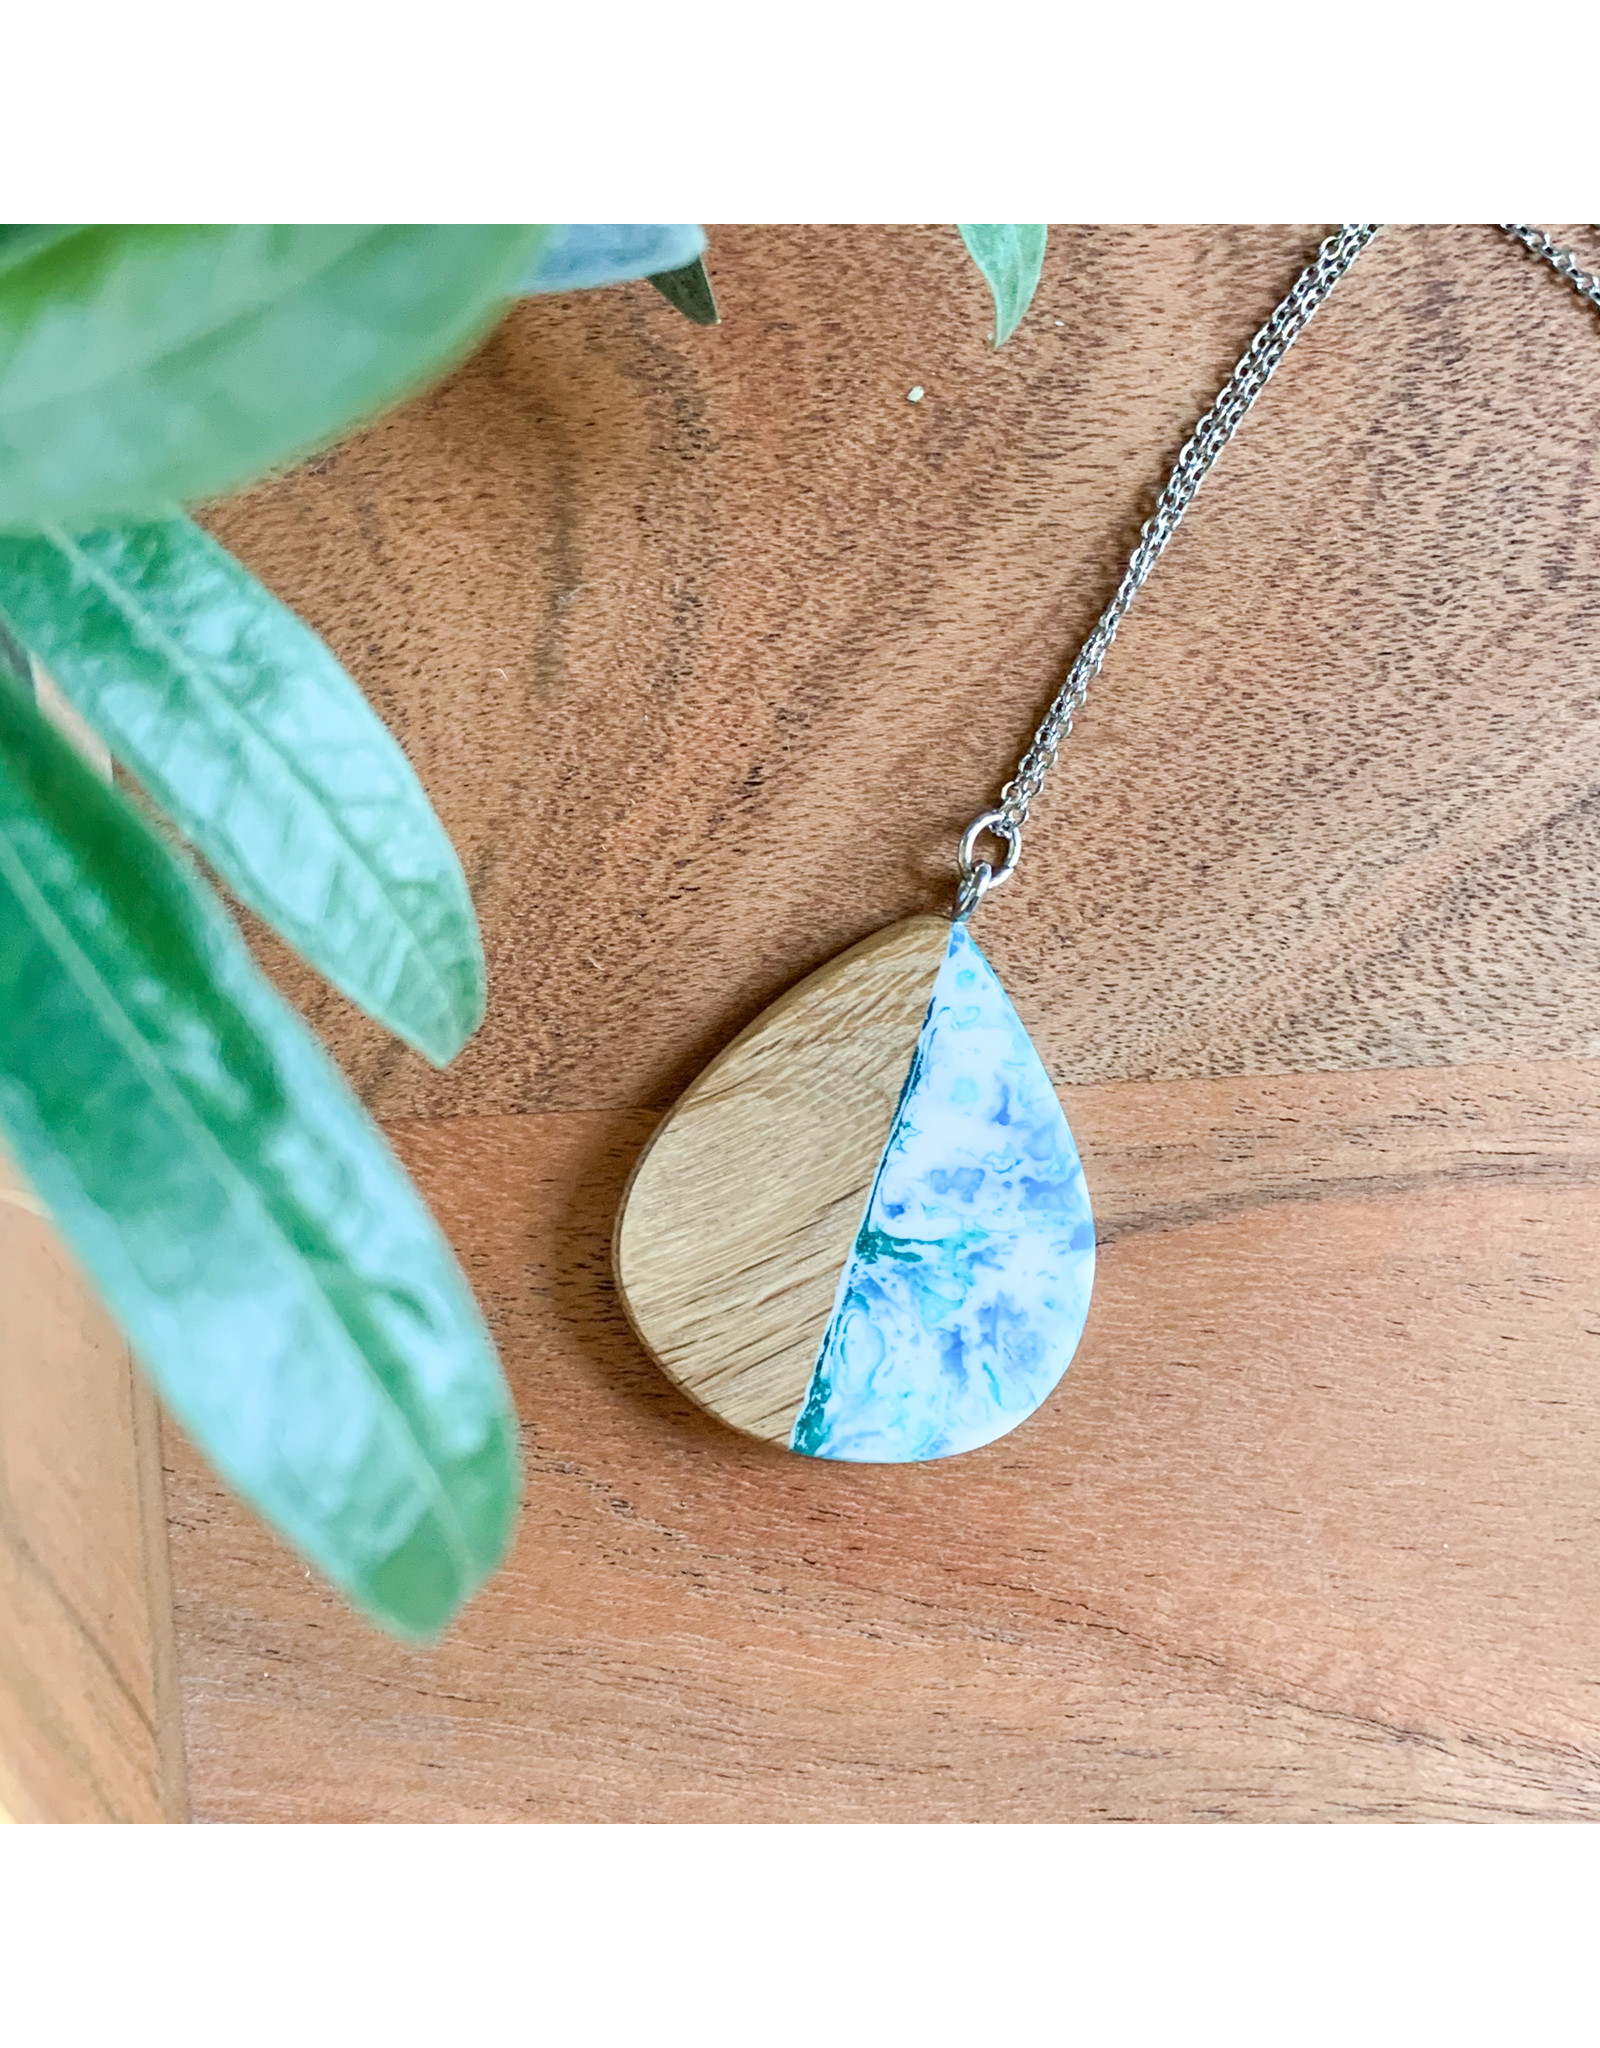 Peter Mielech Necklace - Blue and Wood Teardrop